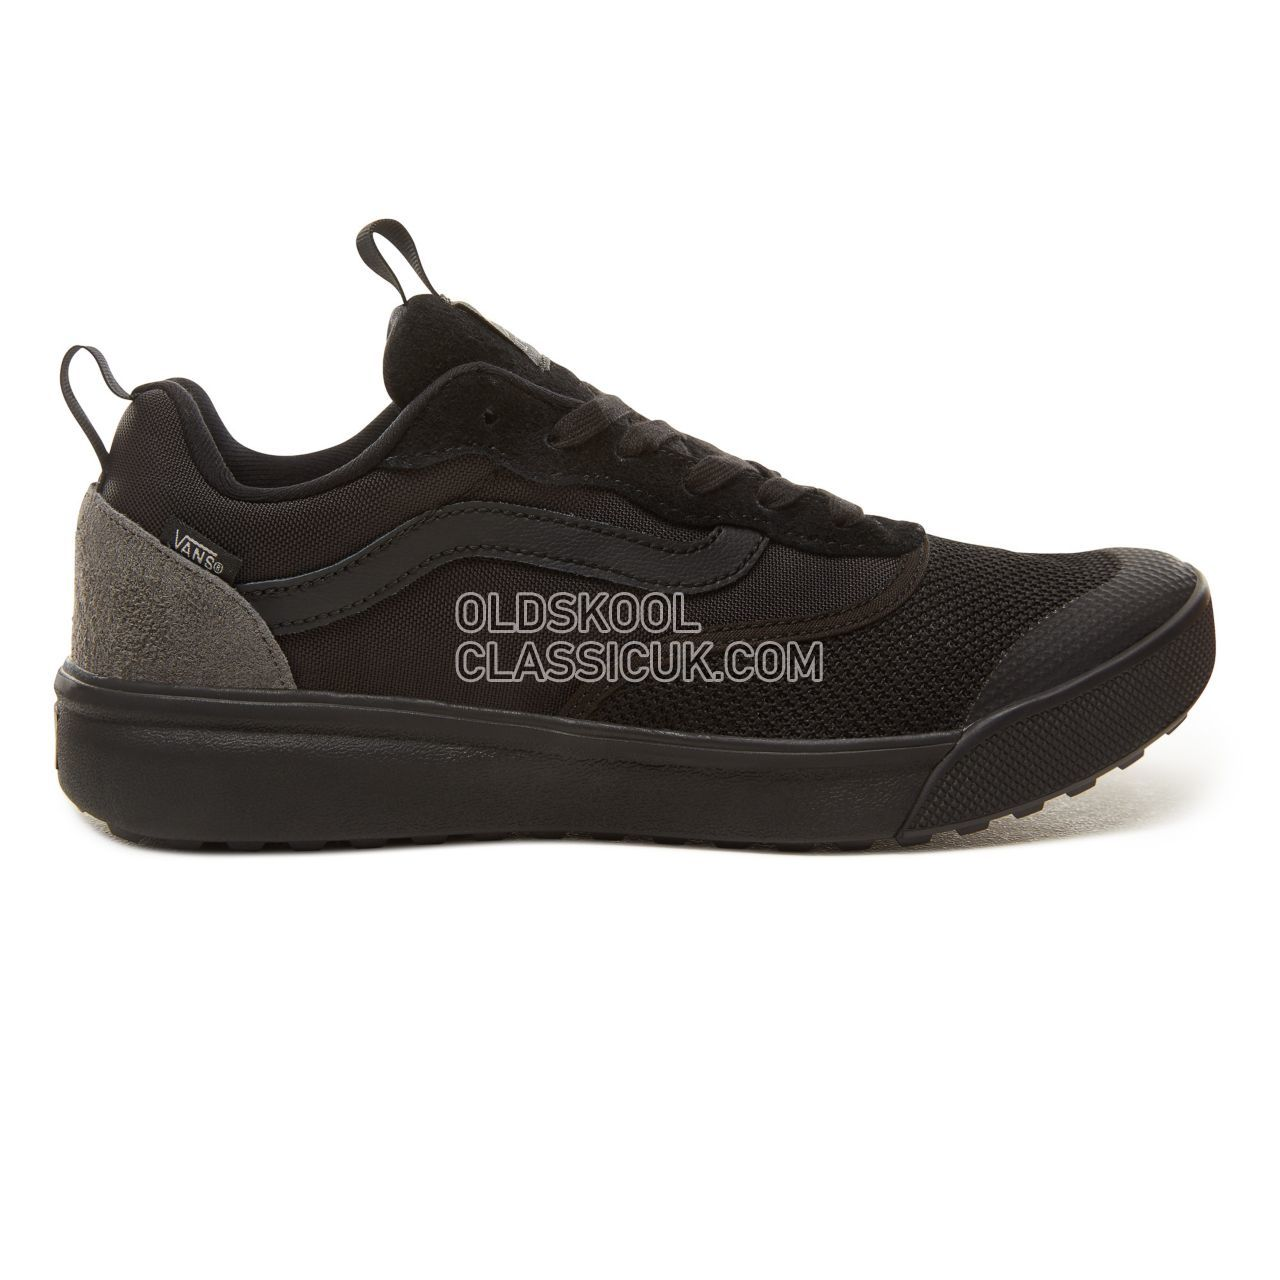 Vans UltraRange Sneakers Mens Black/Peat VA3NASUDC Shoes